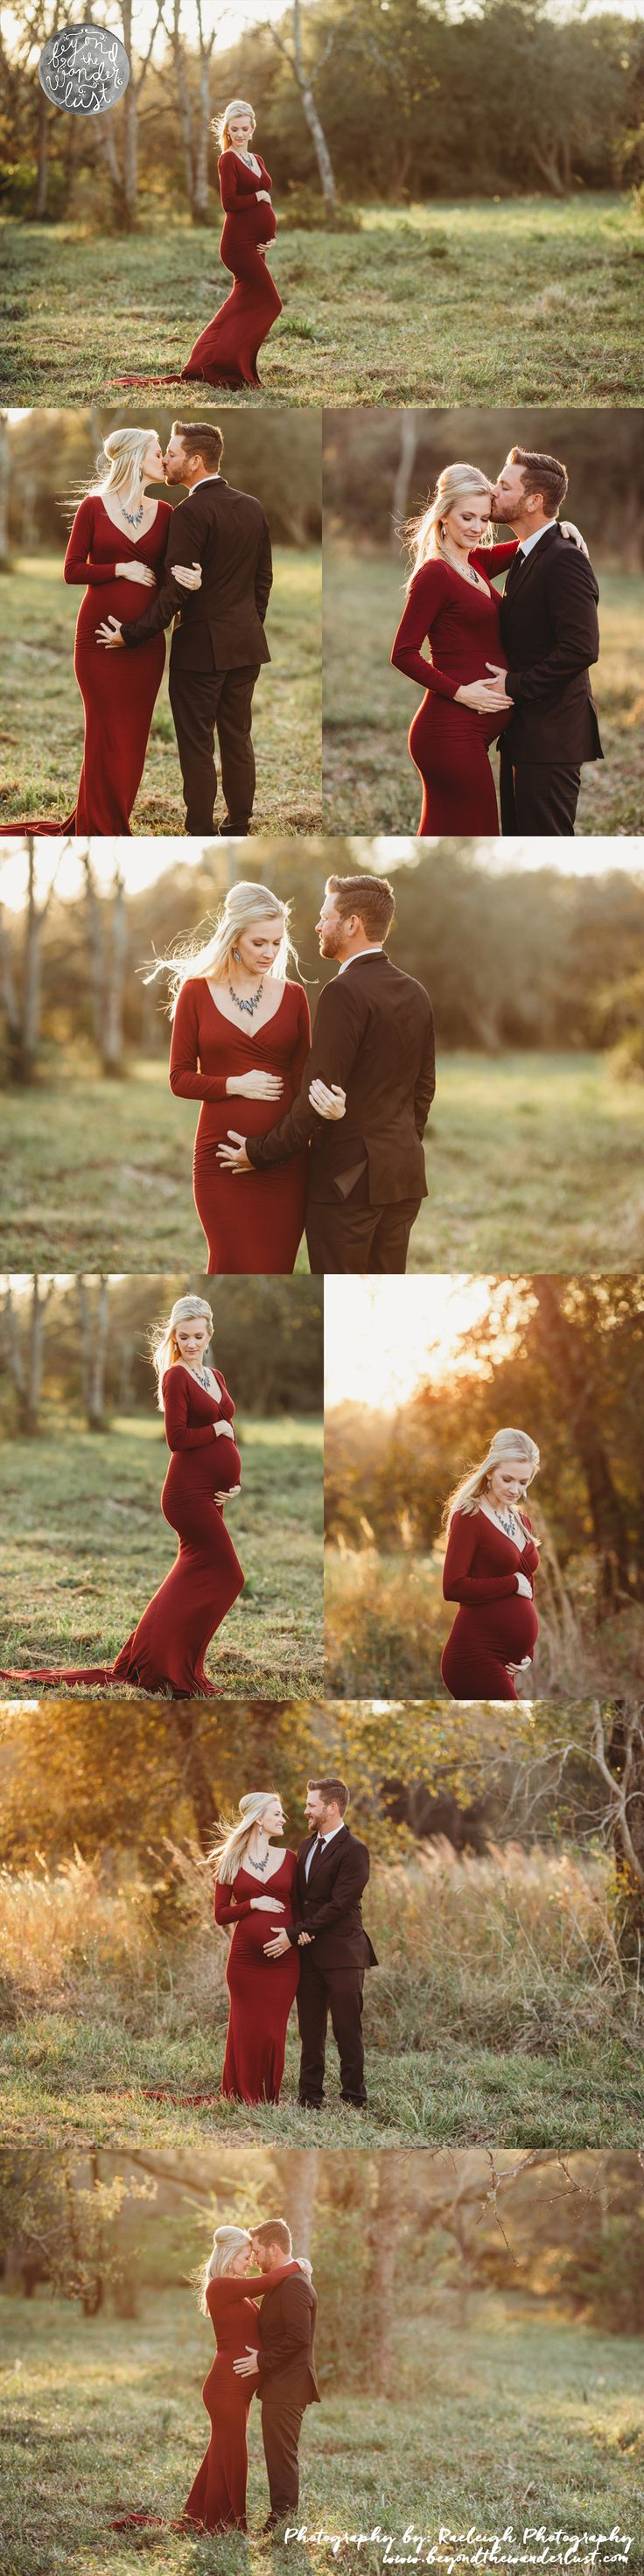 I really like this set of photos! I'm always looking for something new and fun to try out with clients. Maternity photography >> maternity poses